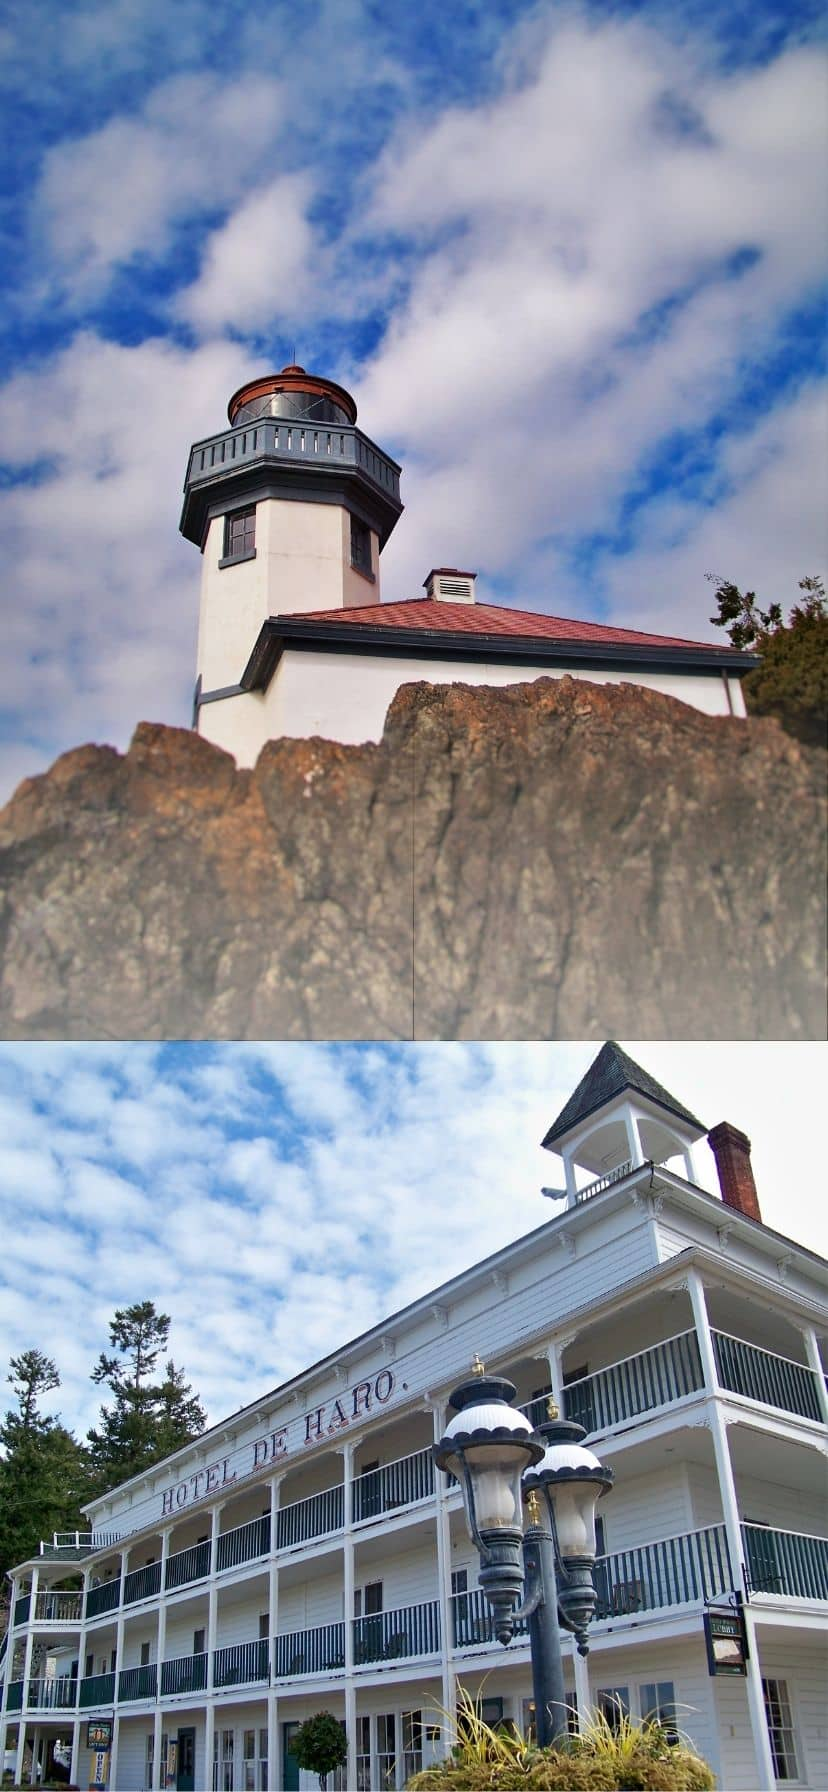 Lime Kiln Lighthouse and Hotel De Haro Roche Harbor Island Kayaking in the San Juans